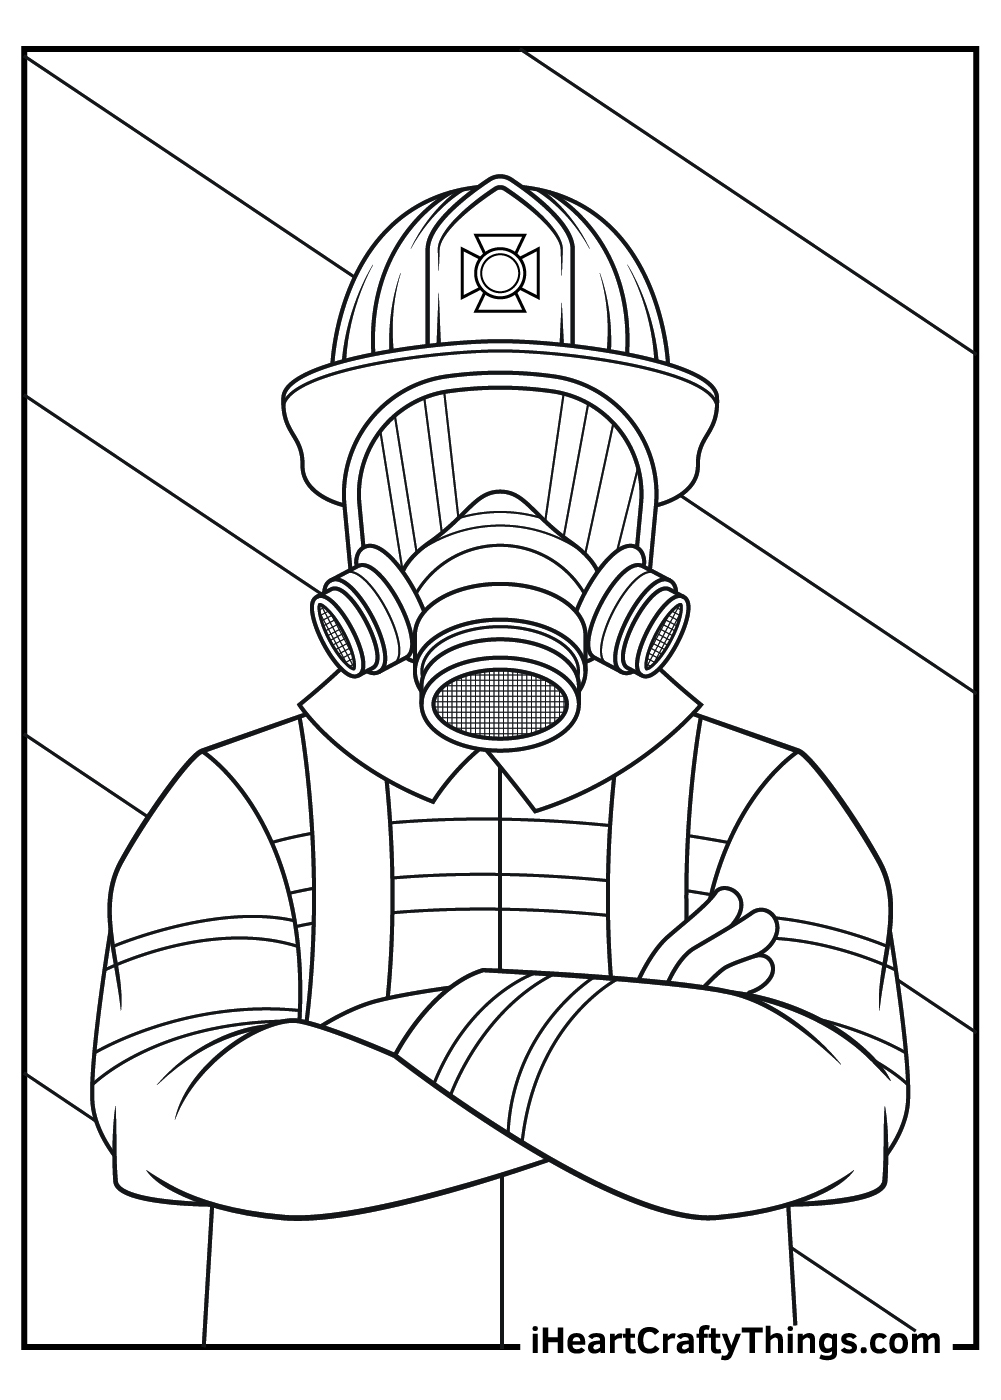 fireman gear coloring pages free to print out